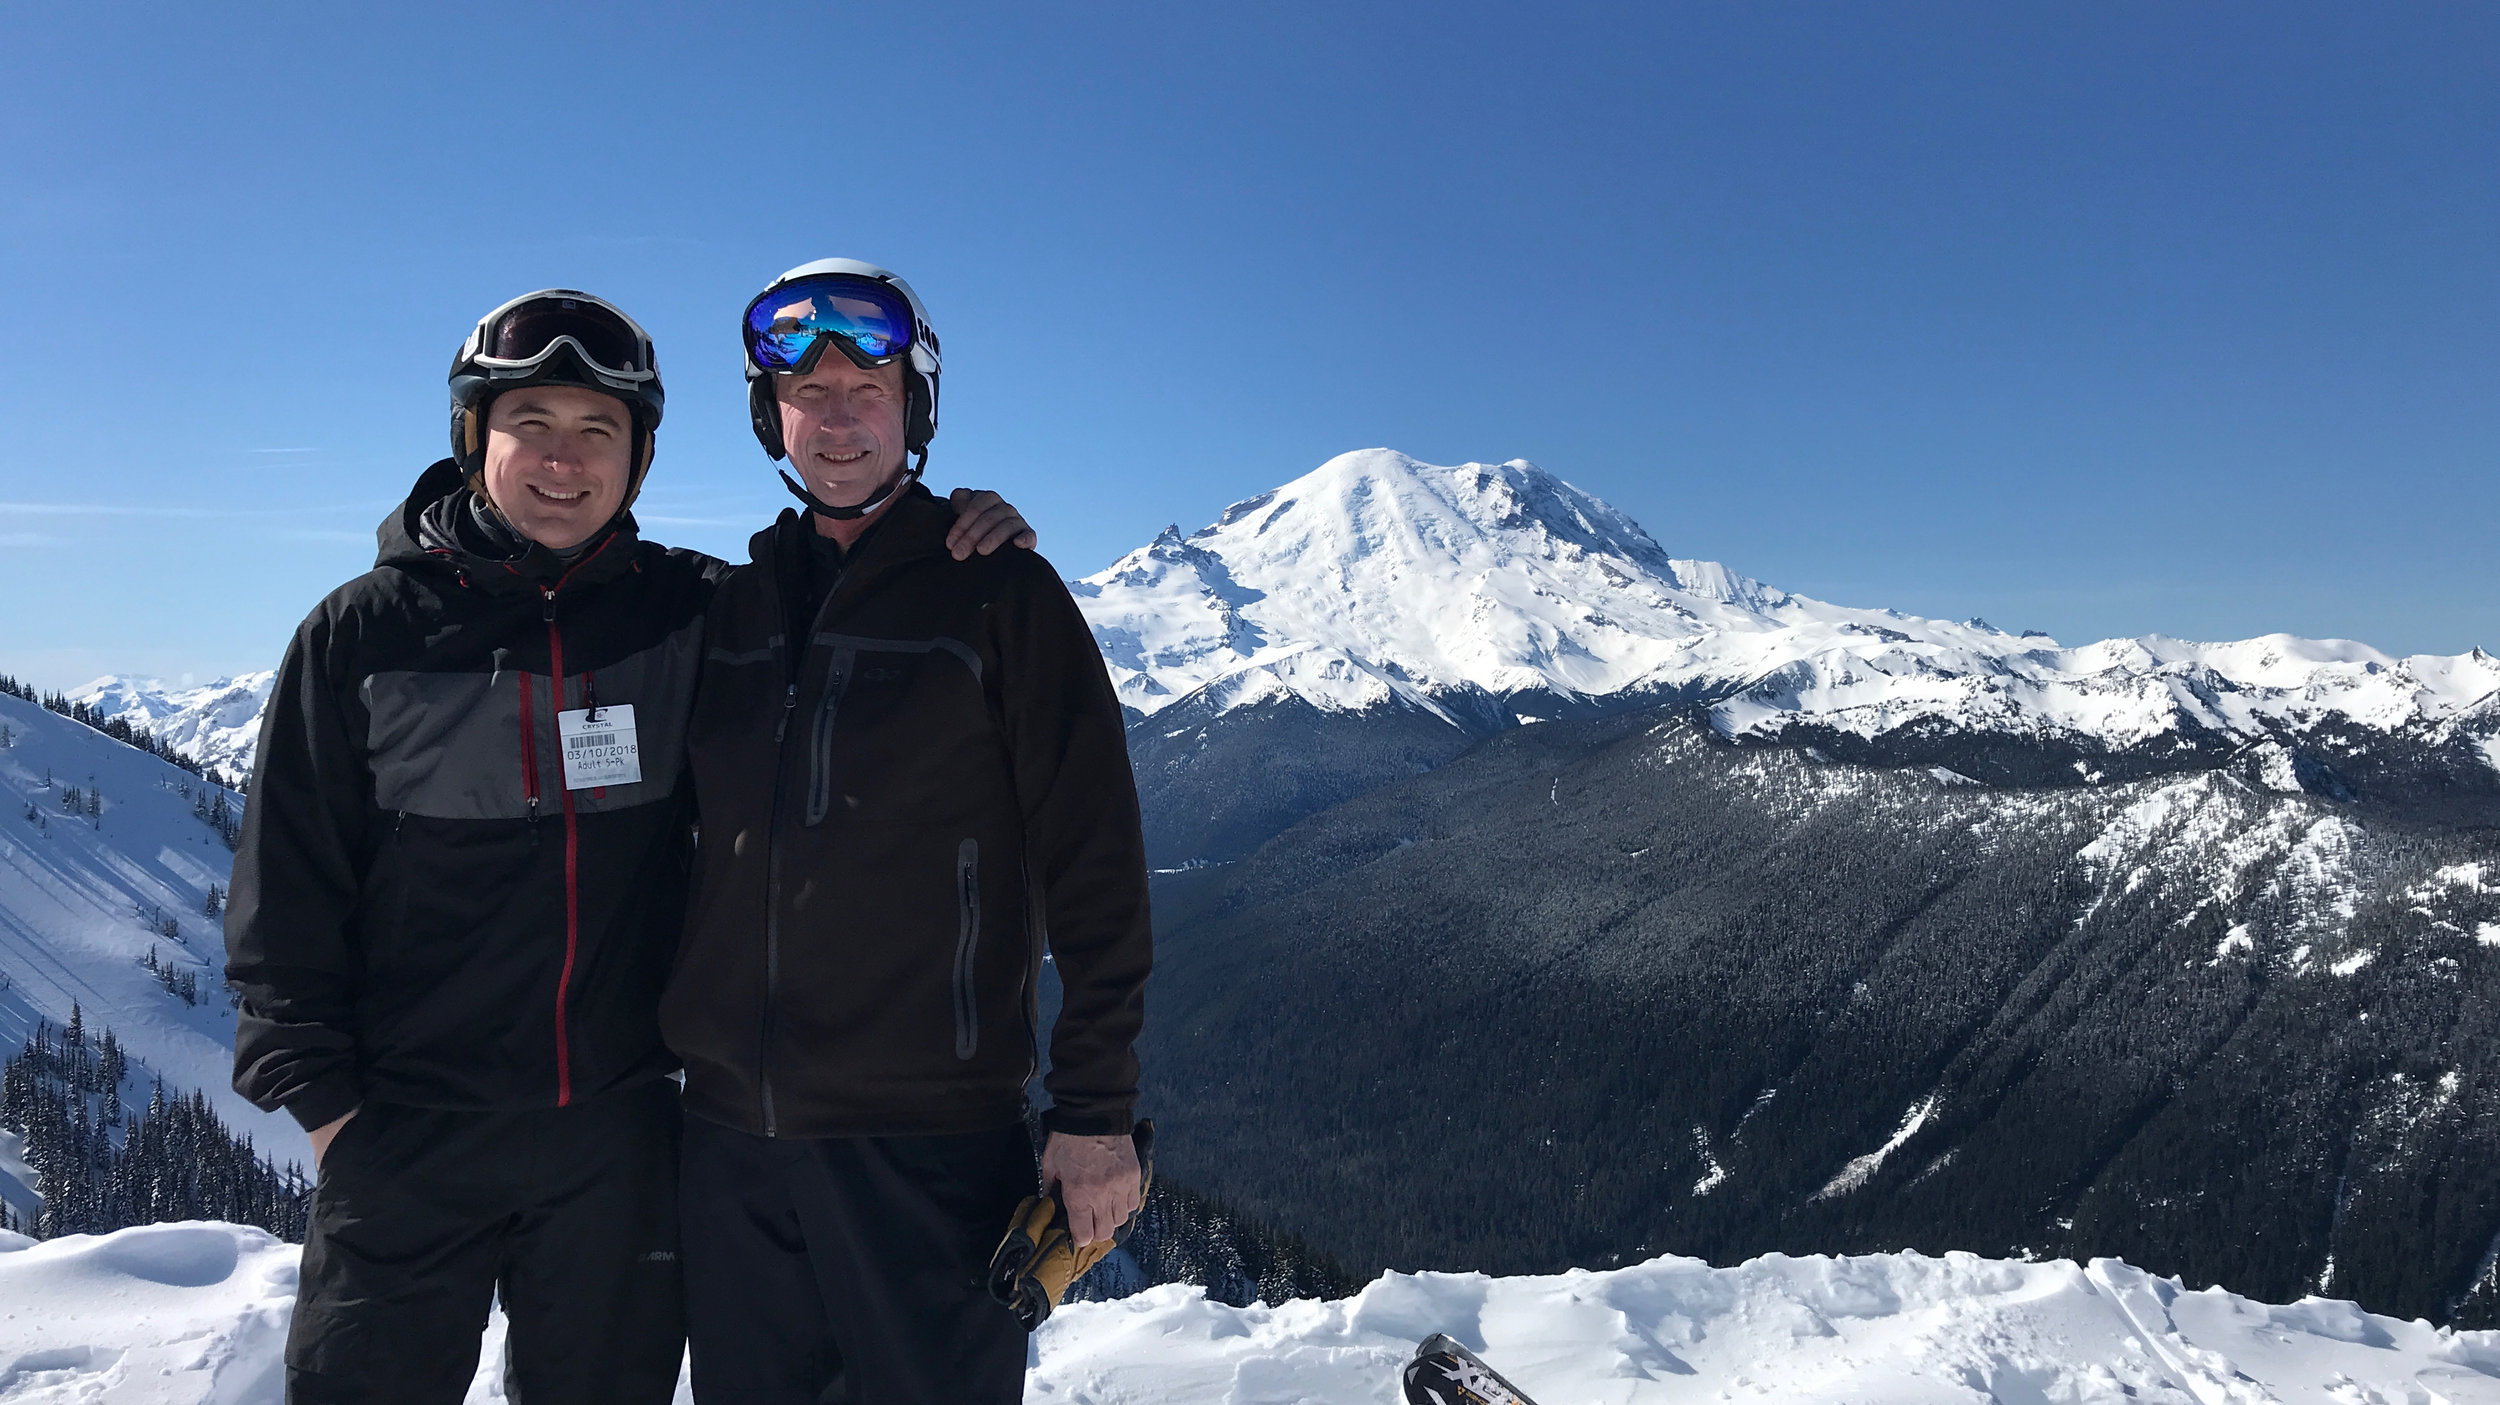 With my son during Crystal ski day; the view that was missing during the summer trip